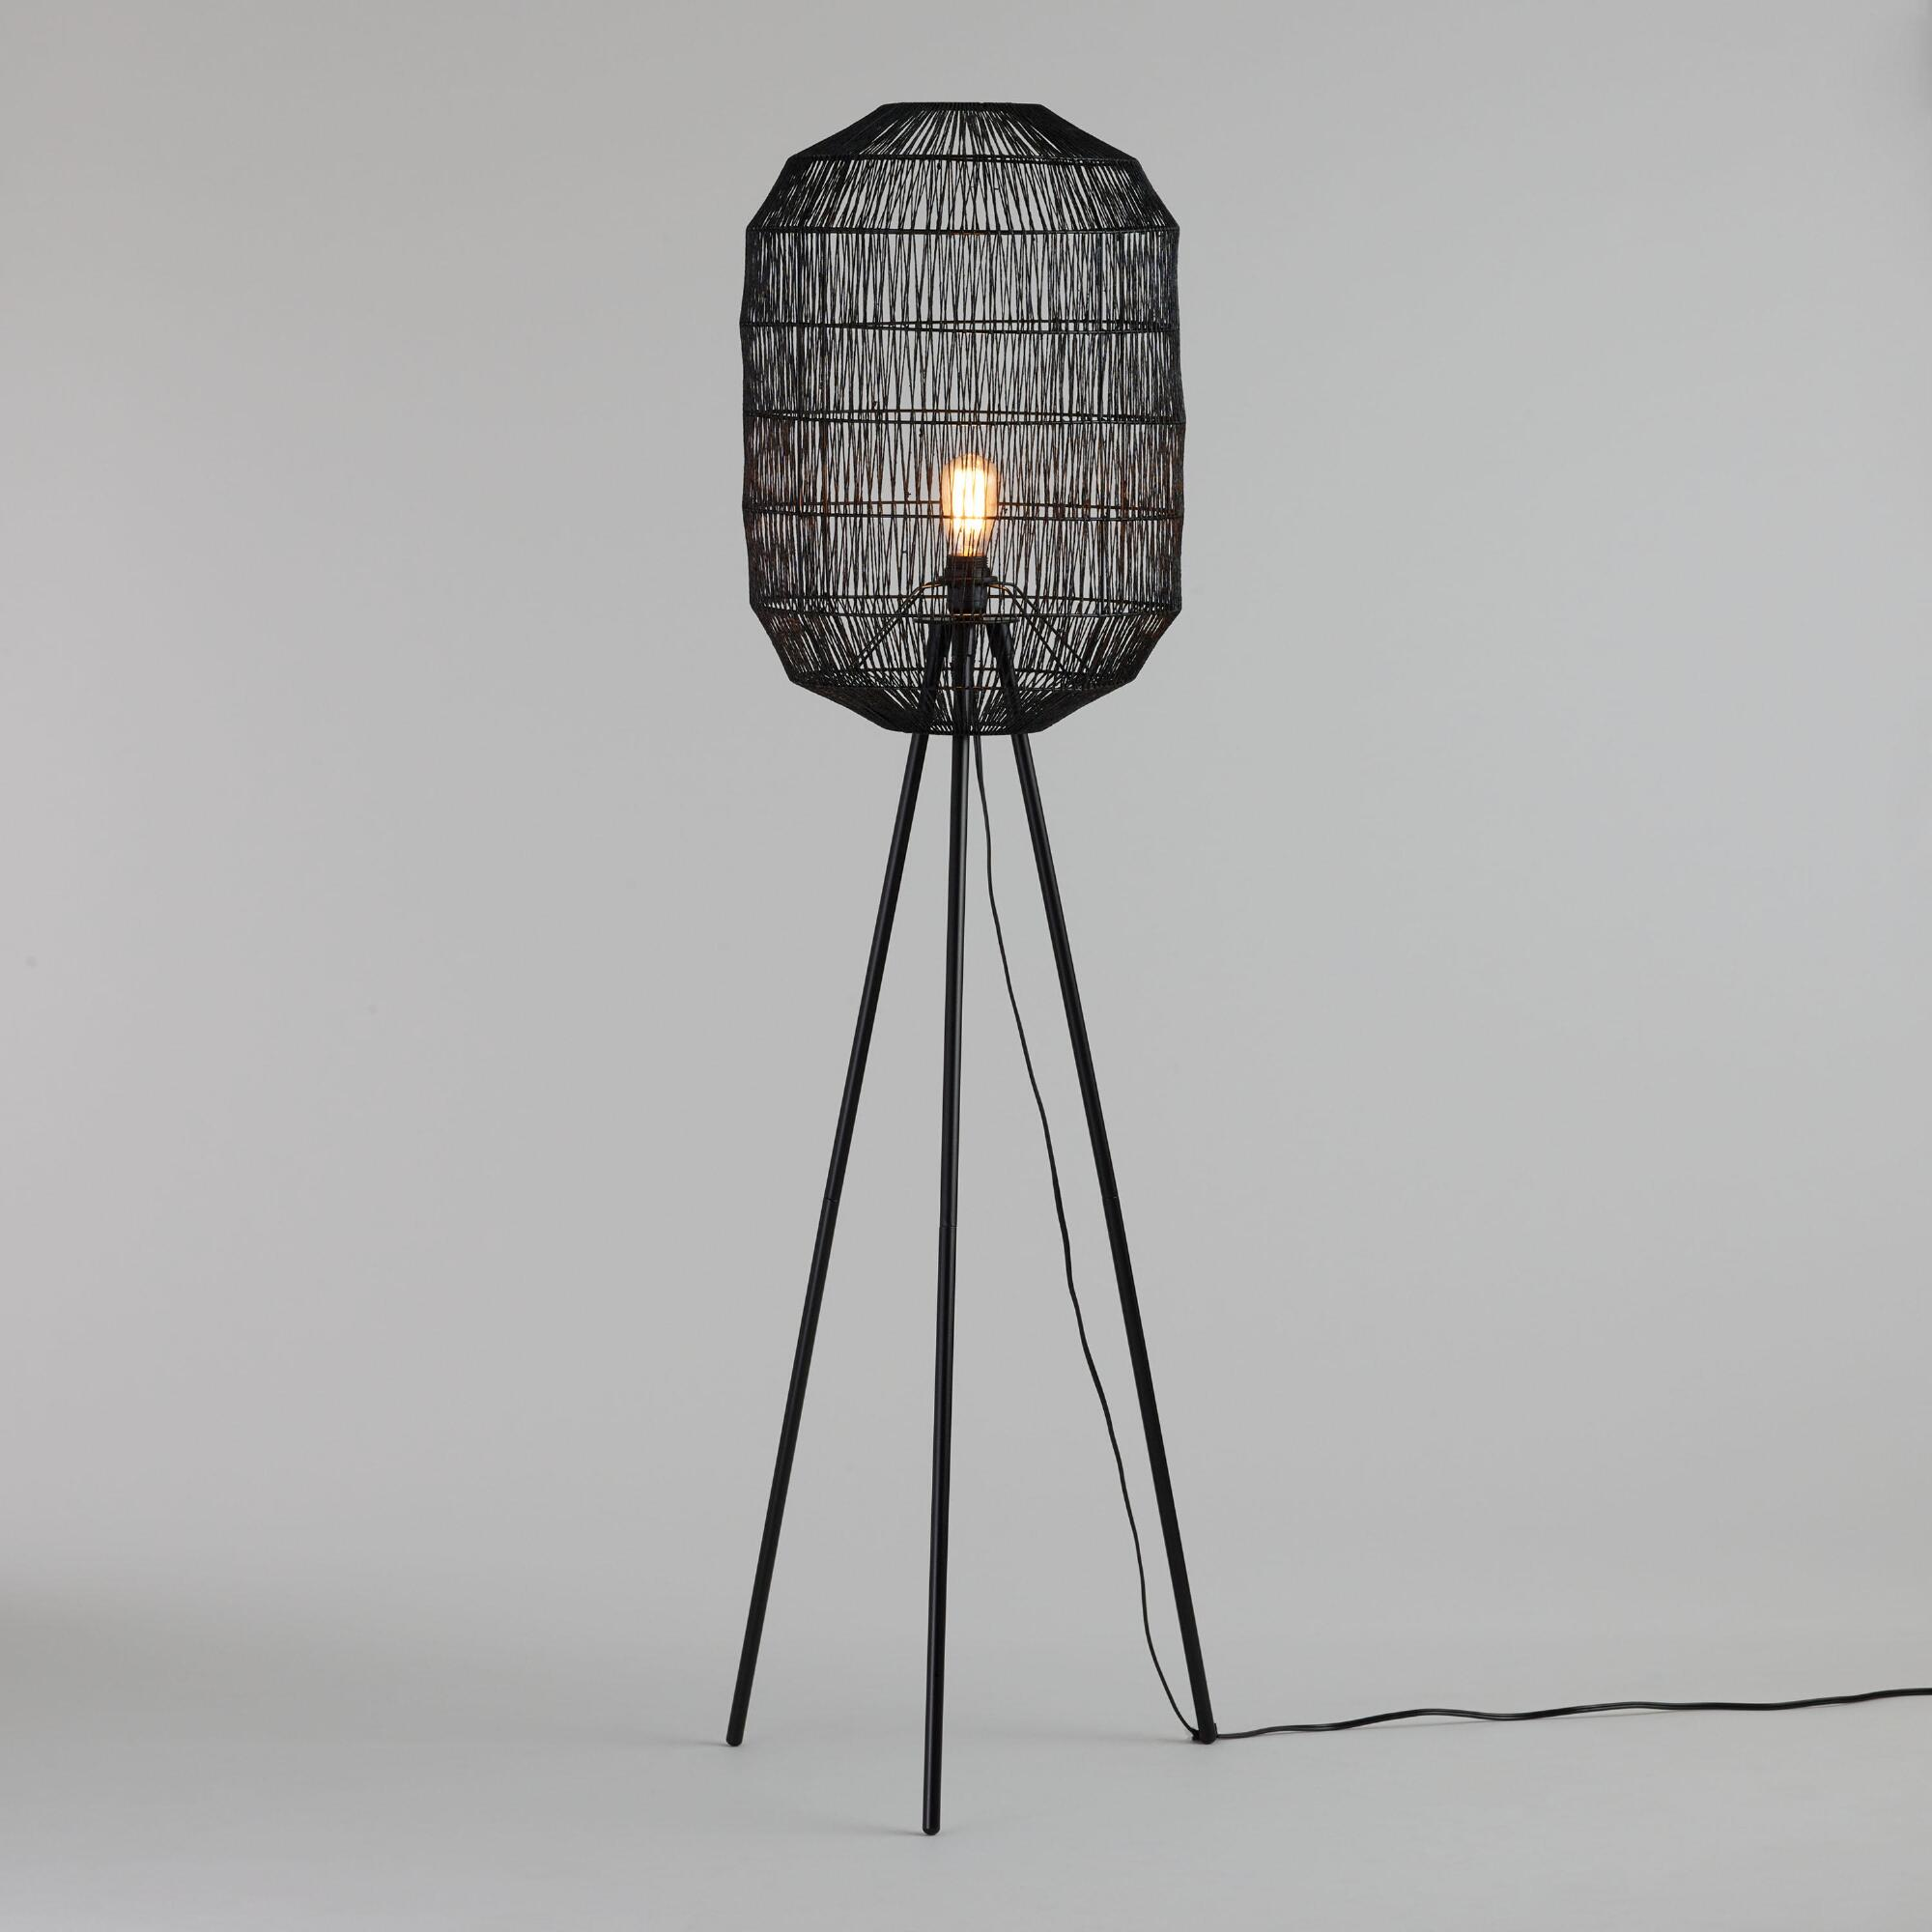 Matte Black Tripod Floor Lamp with Woven Rope Lamp Shade Set by World Market